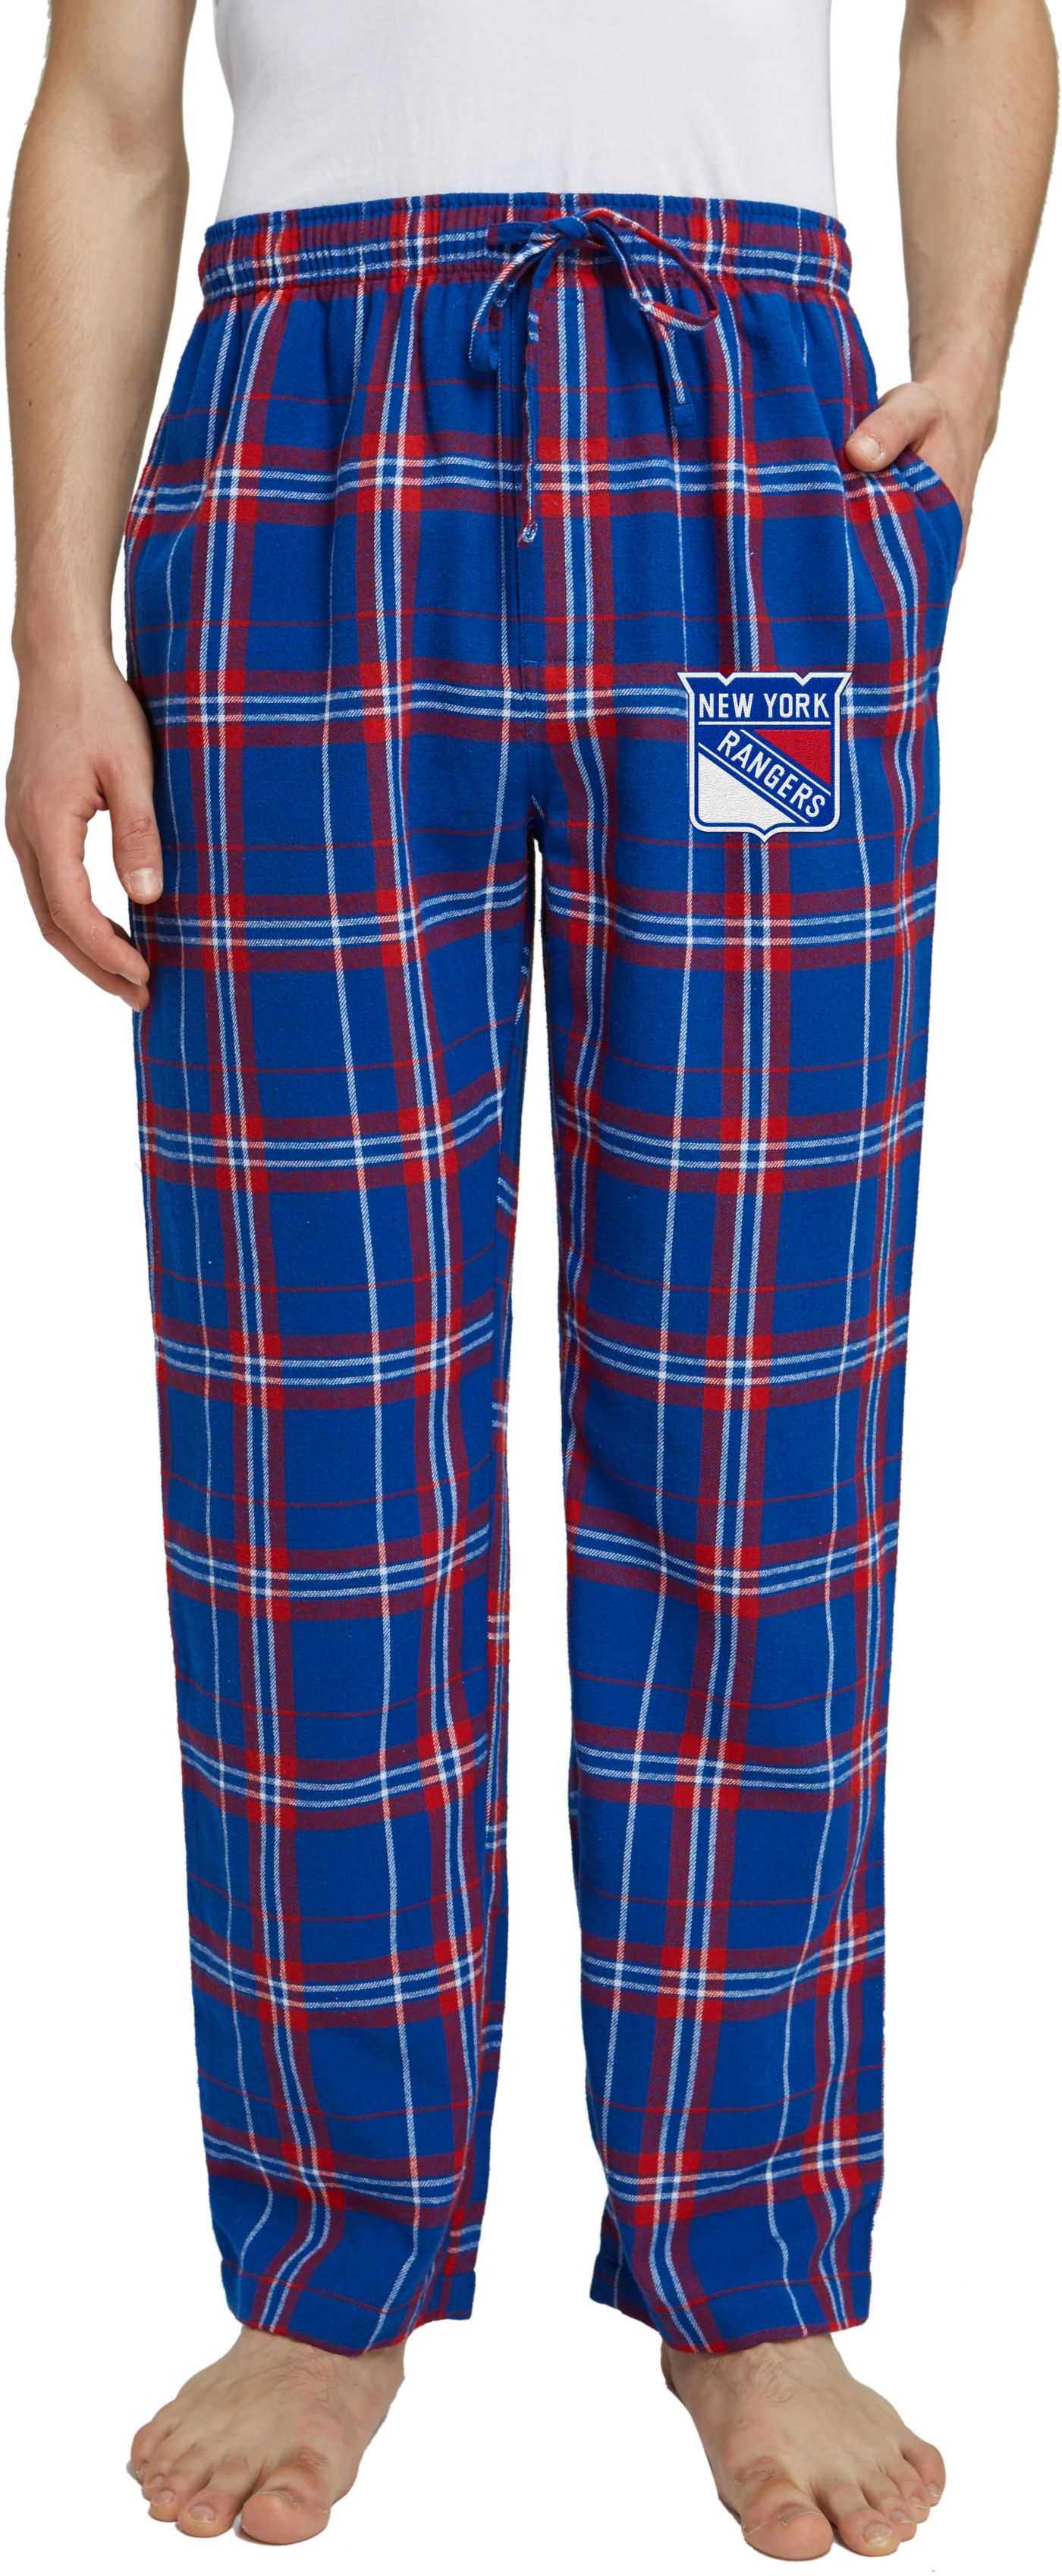 Concepts Sport Men's New York Rangers Hillstone Royal Flannel Pants